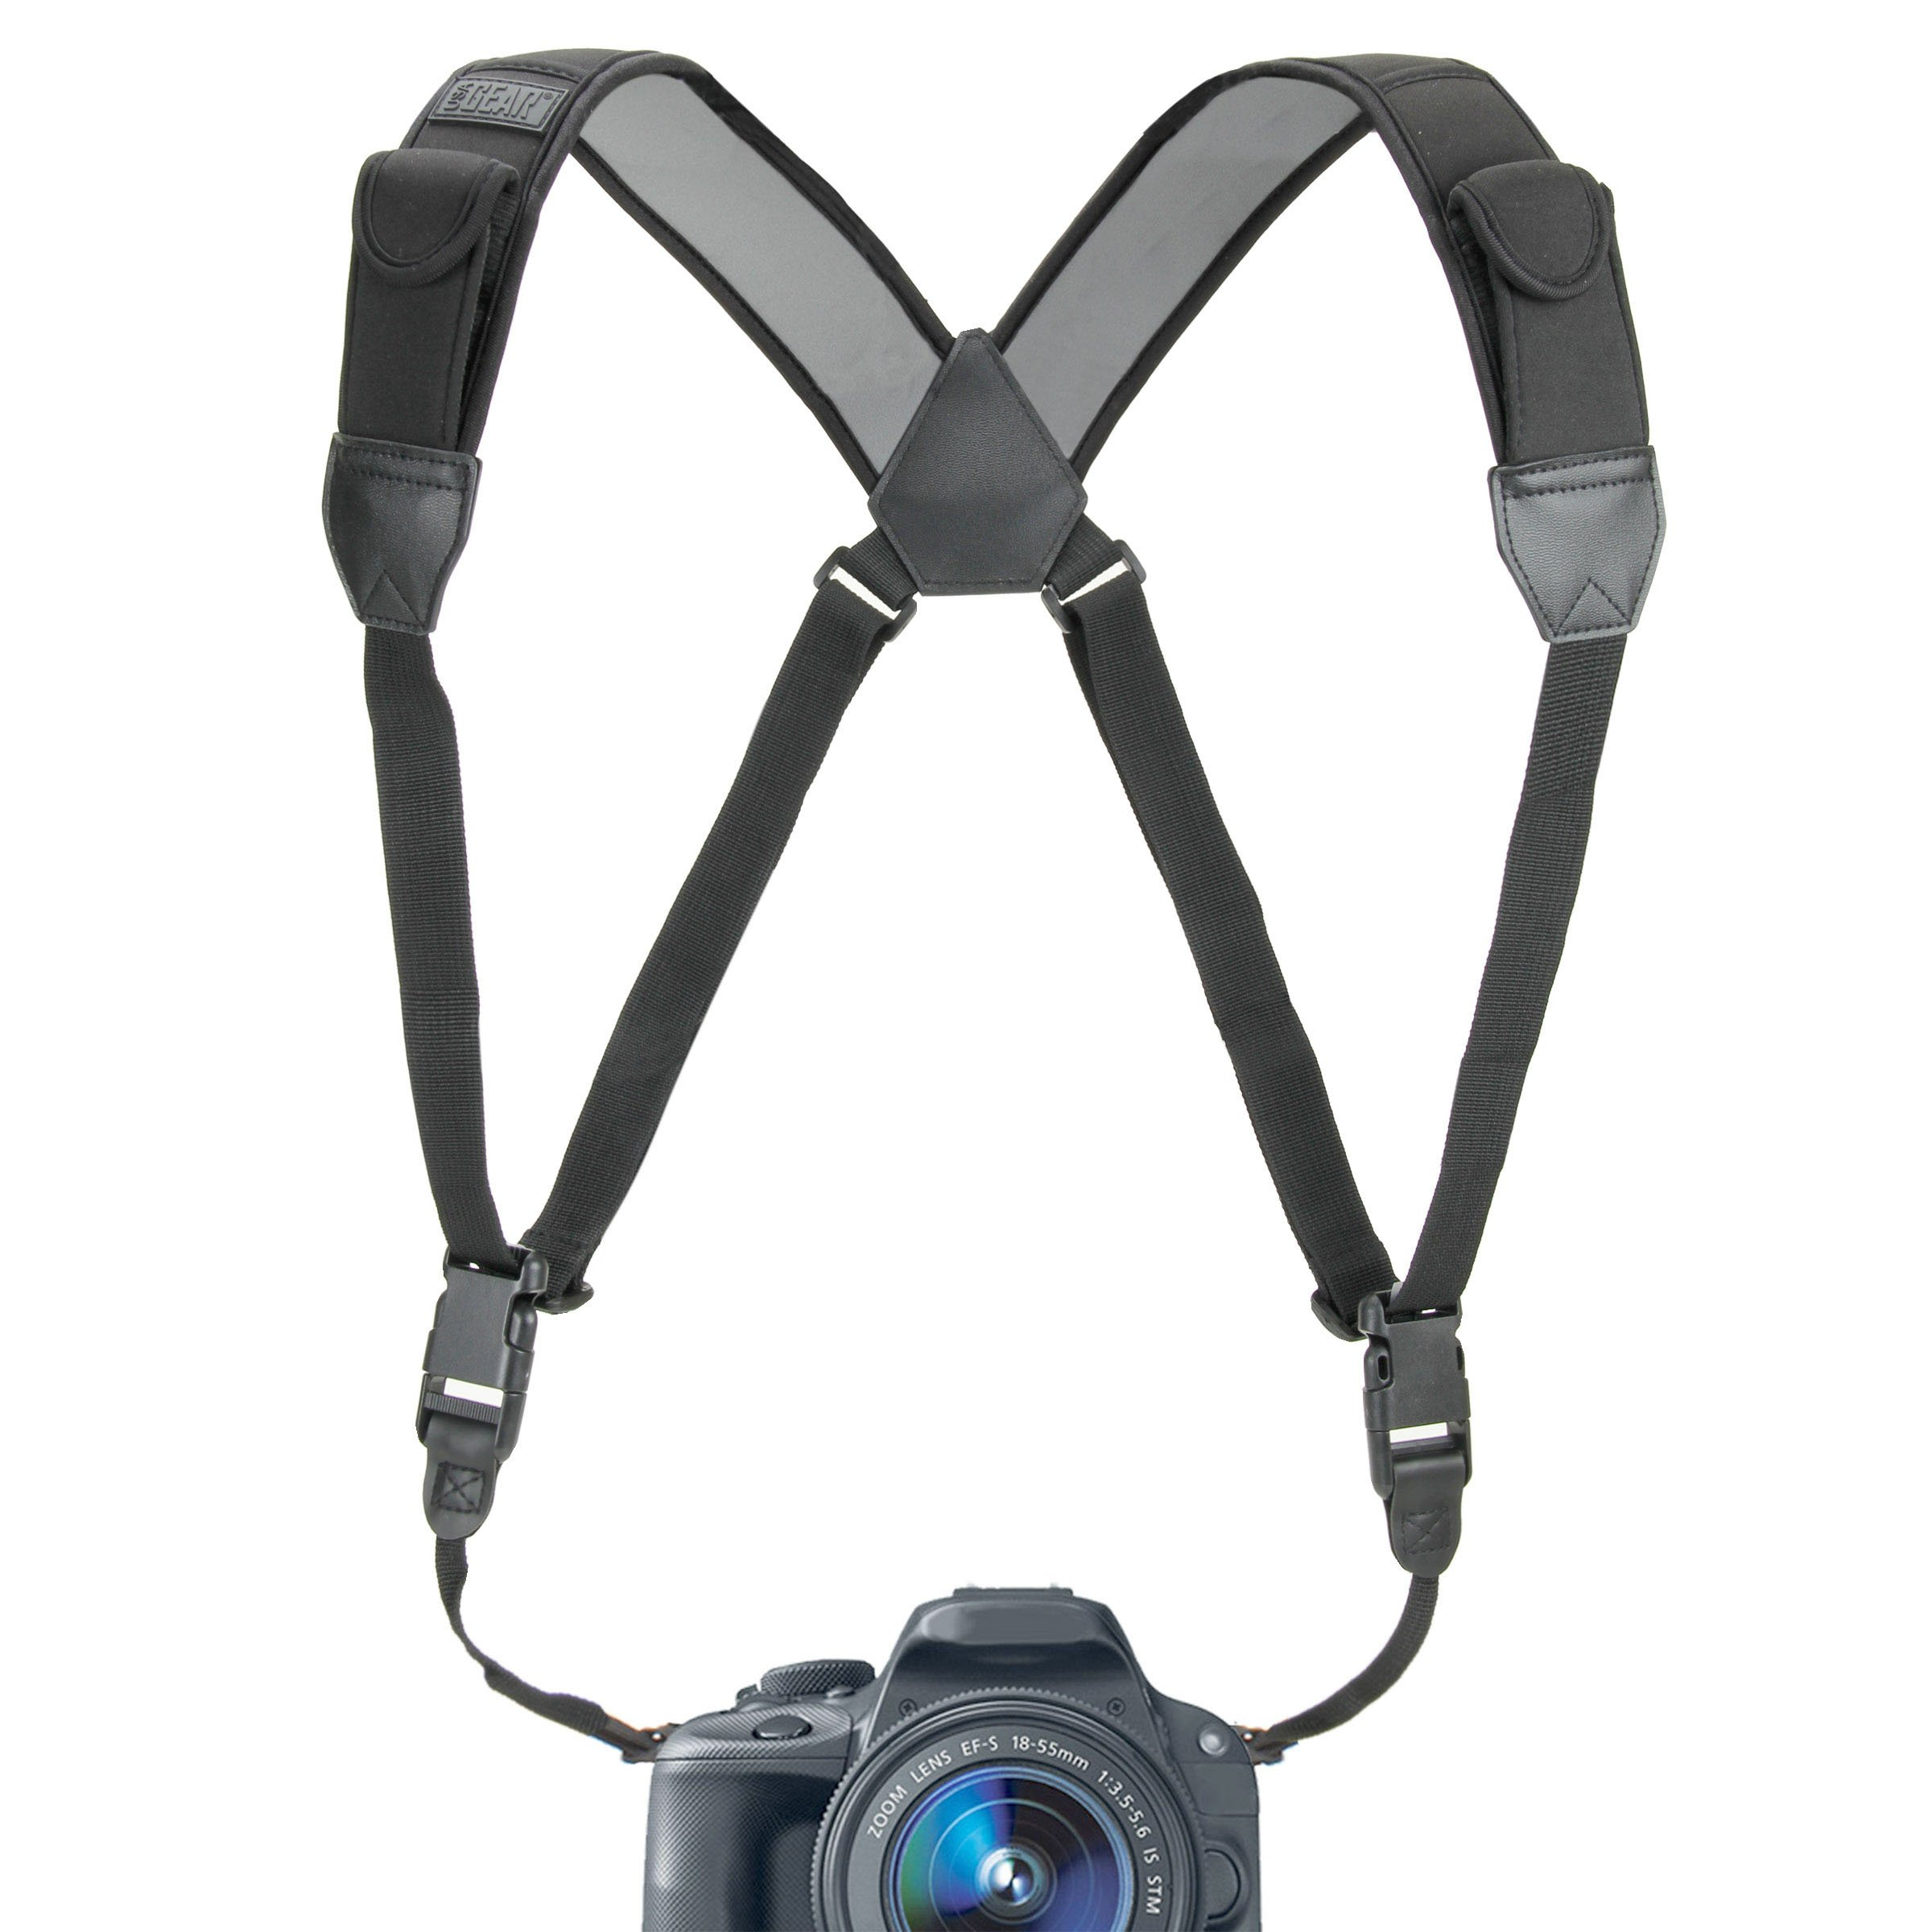 Camera Strap Chest Harness with Comfortable Neoprene and Accessory Pockets by USA GEAR - Works with Canon, Nikon, Fujifilm, Sony and More Bincoulars, DSLR, Point & Shoot, Mirrorless Cameras